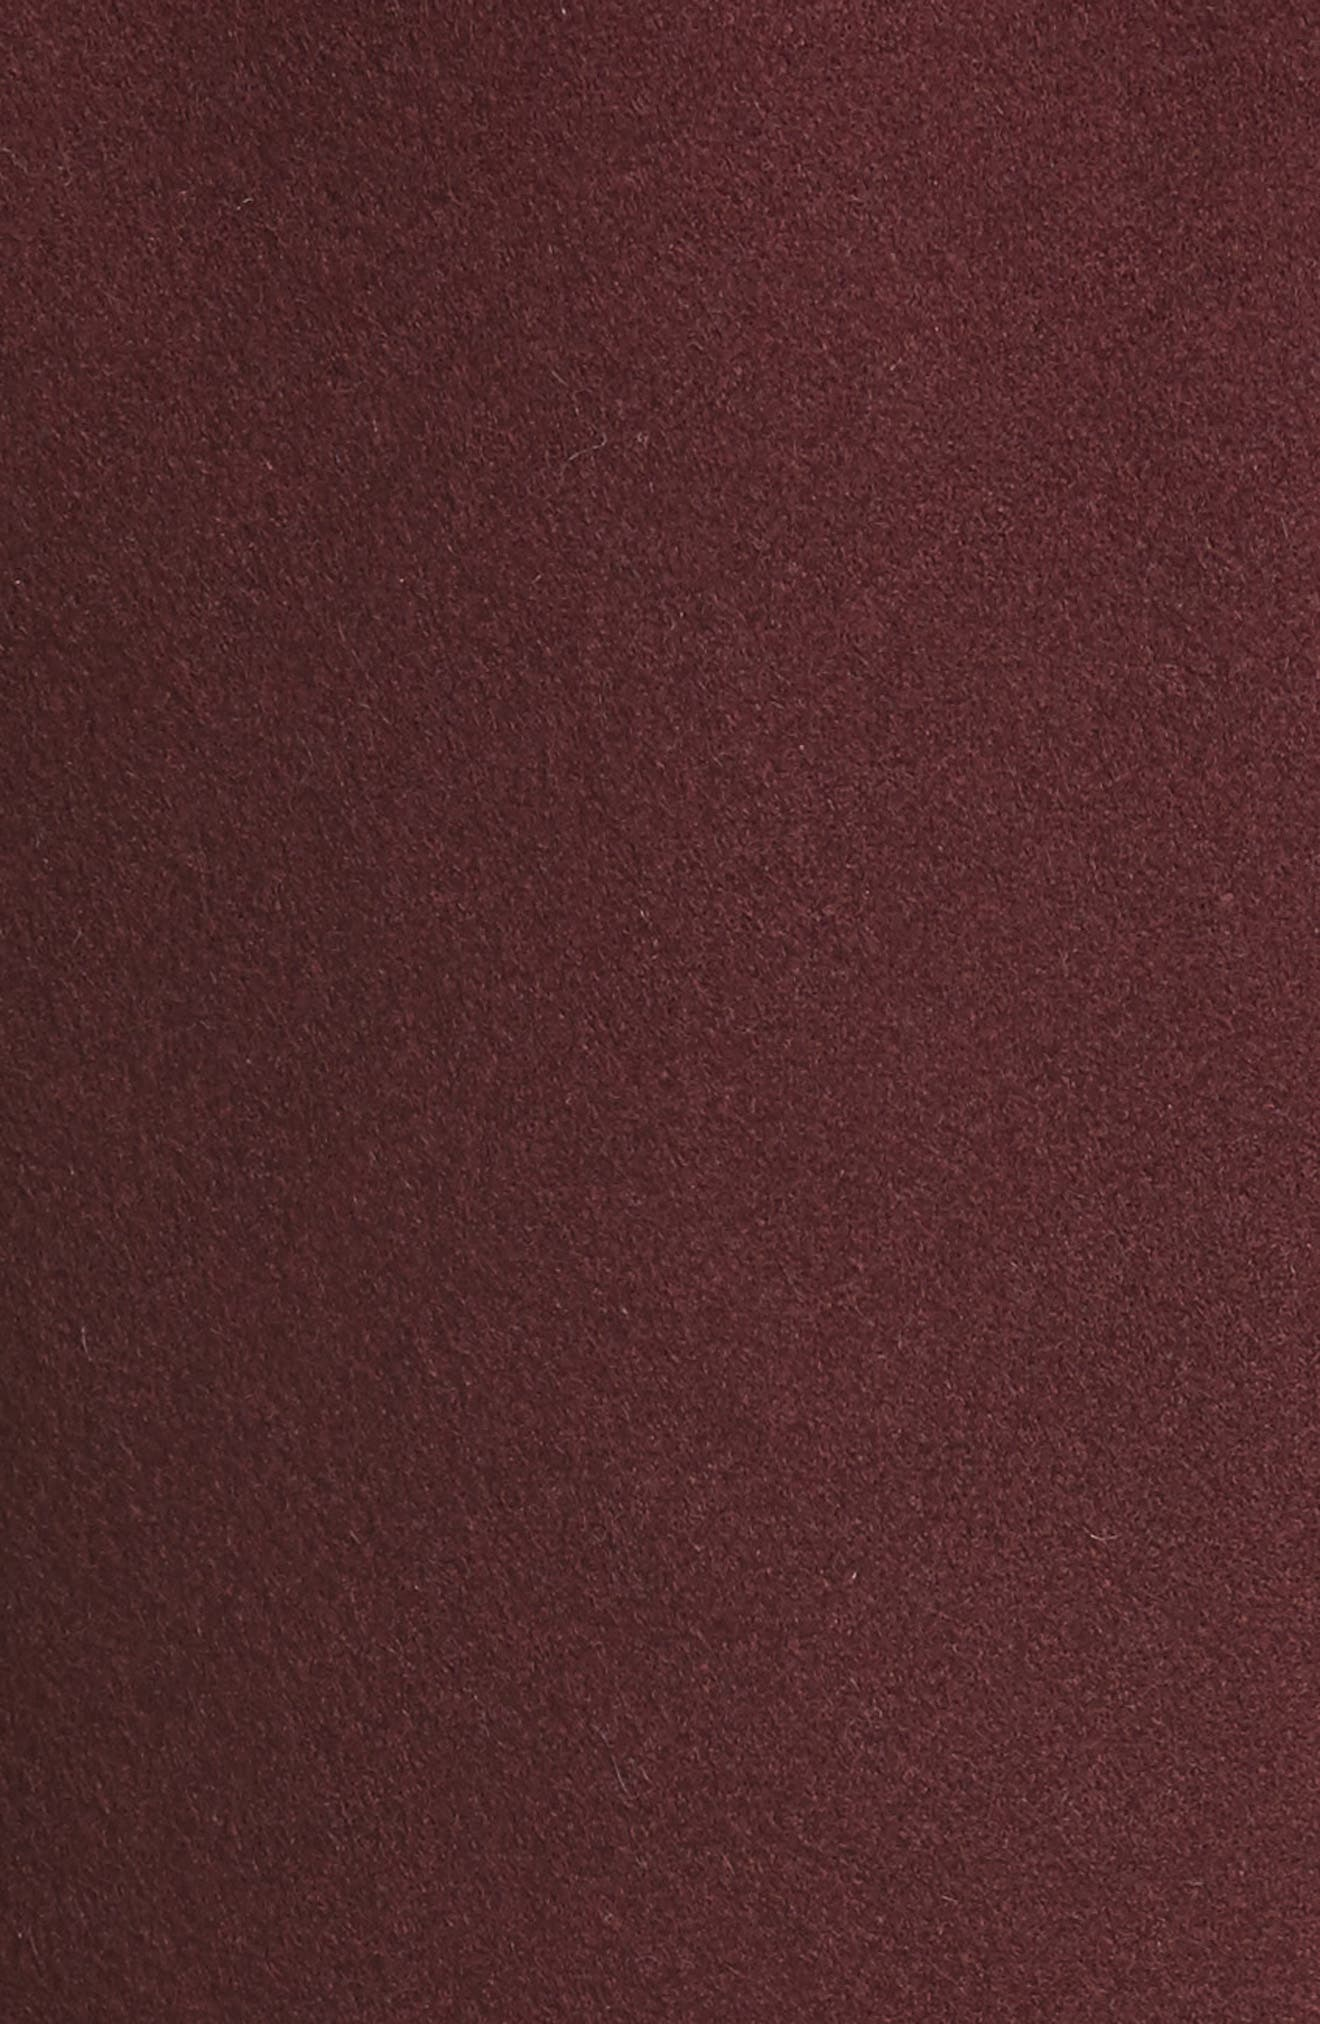 Bonded Felt Coat,                             Alternate thumbnail 5, color,                             Wine-Raspberry